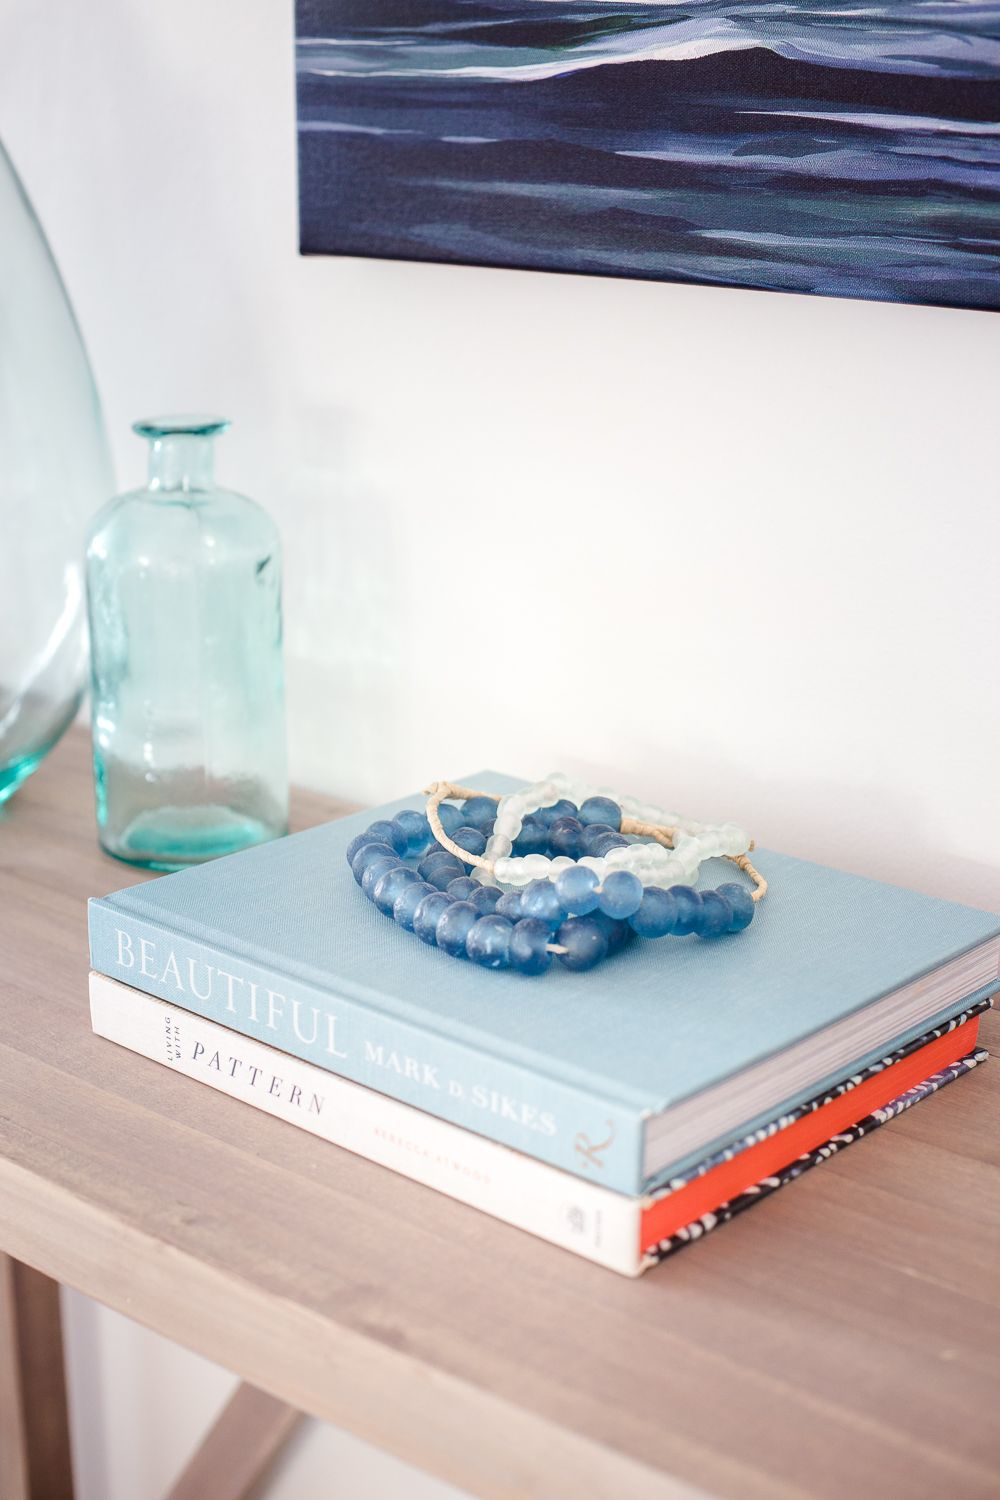 Coffee Table Books Are Great For Decorating As Much They Inspiration These Gorgeous And Inspiring